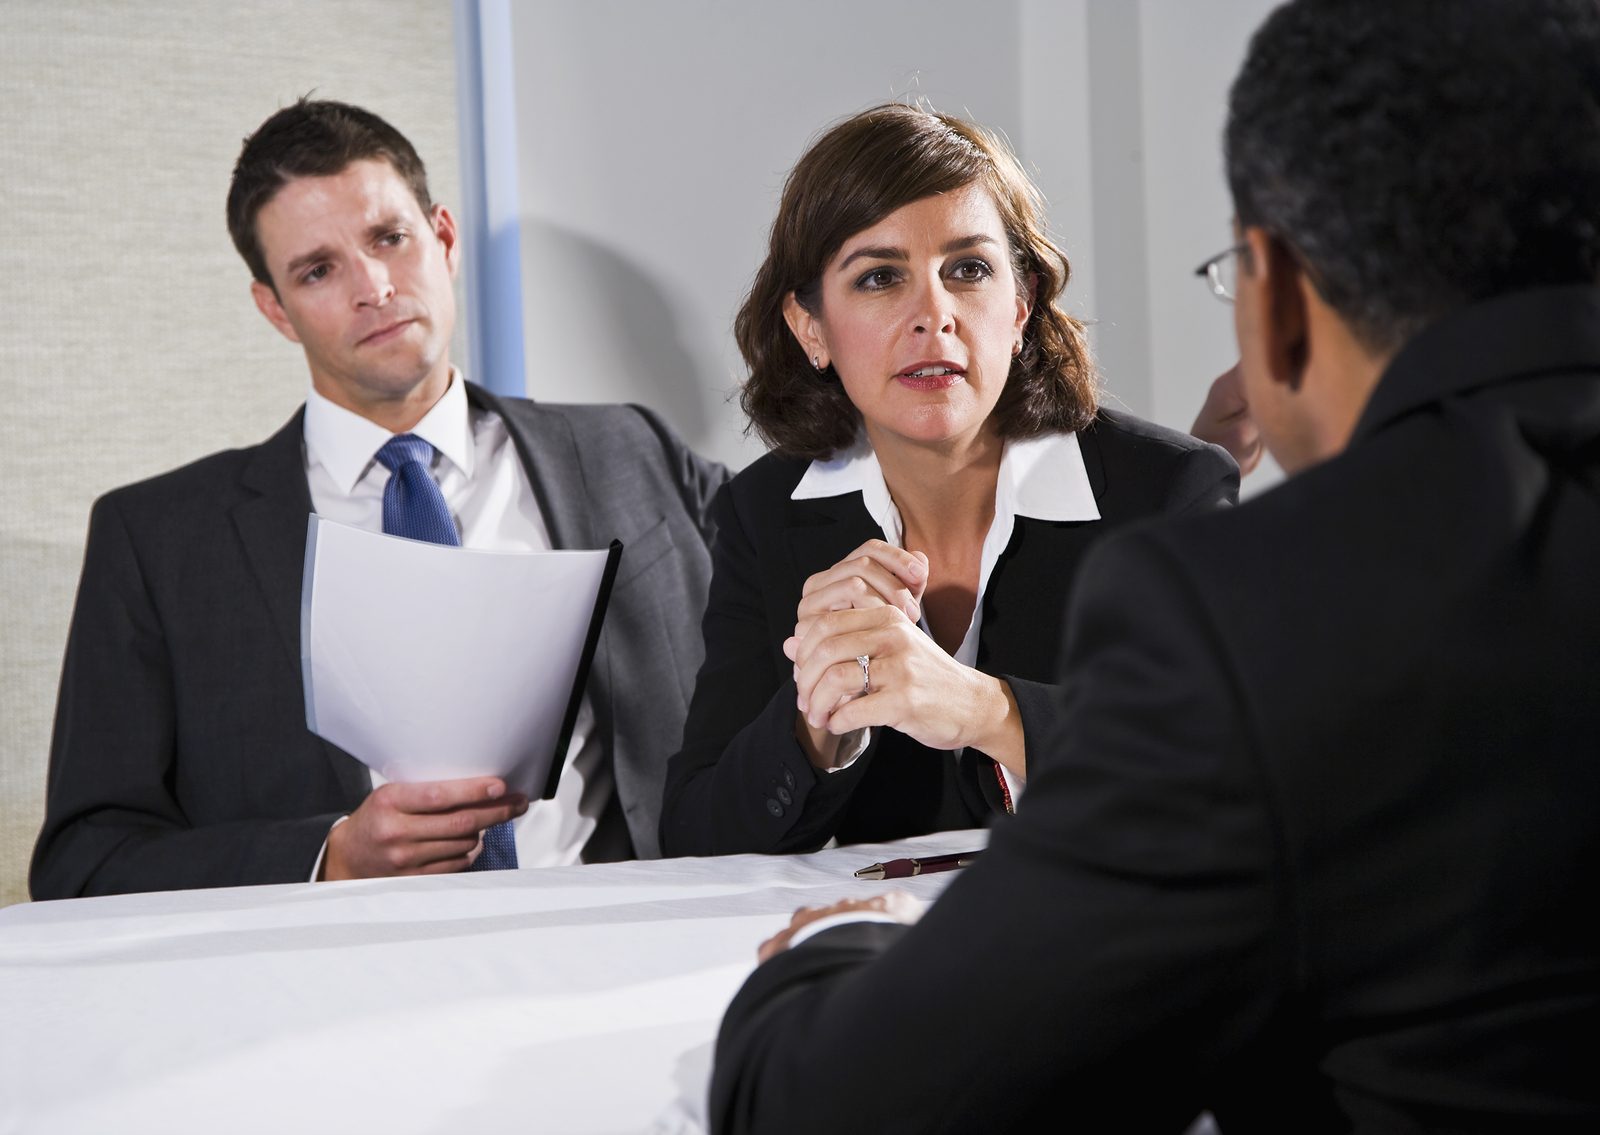 Tips For Finding The Lawyer You Need